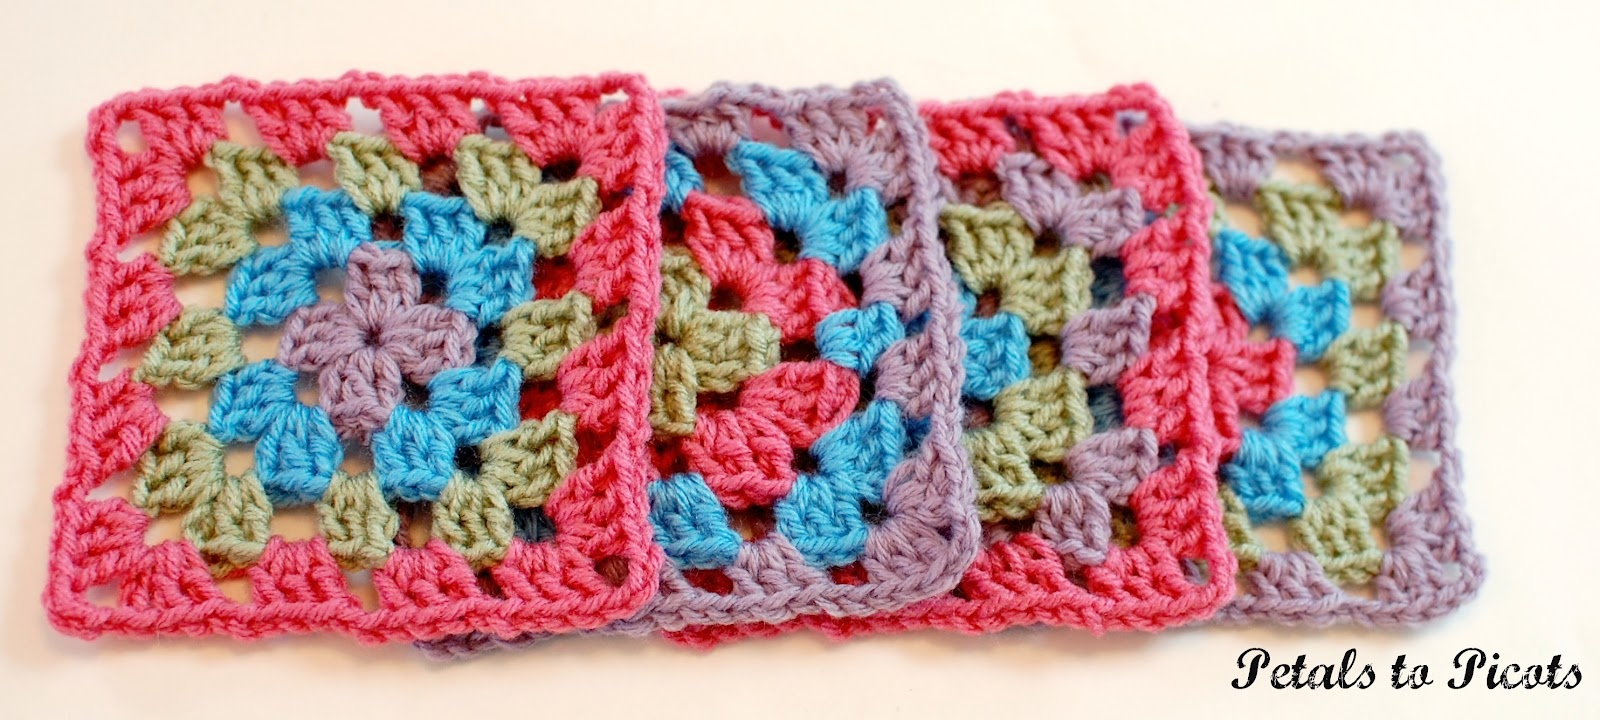 How To Crochet A Classic Granny Square: Granny Square Pattern - Free Printable Crochet Granny Square Patterns